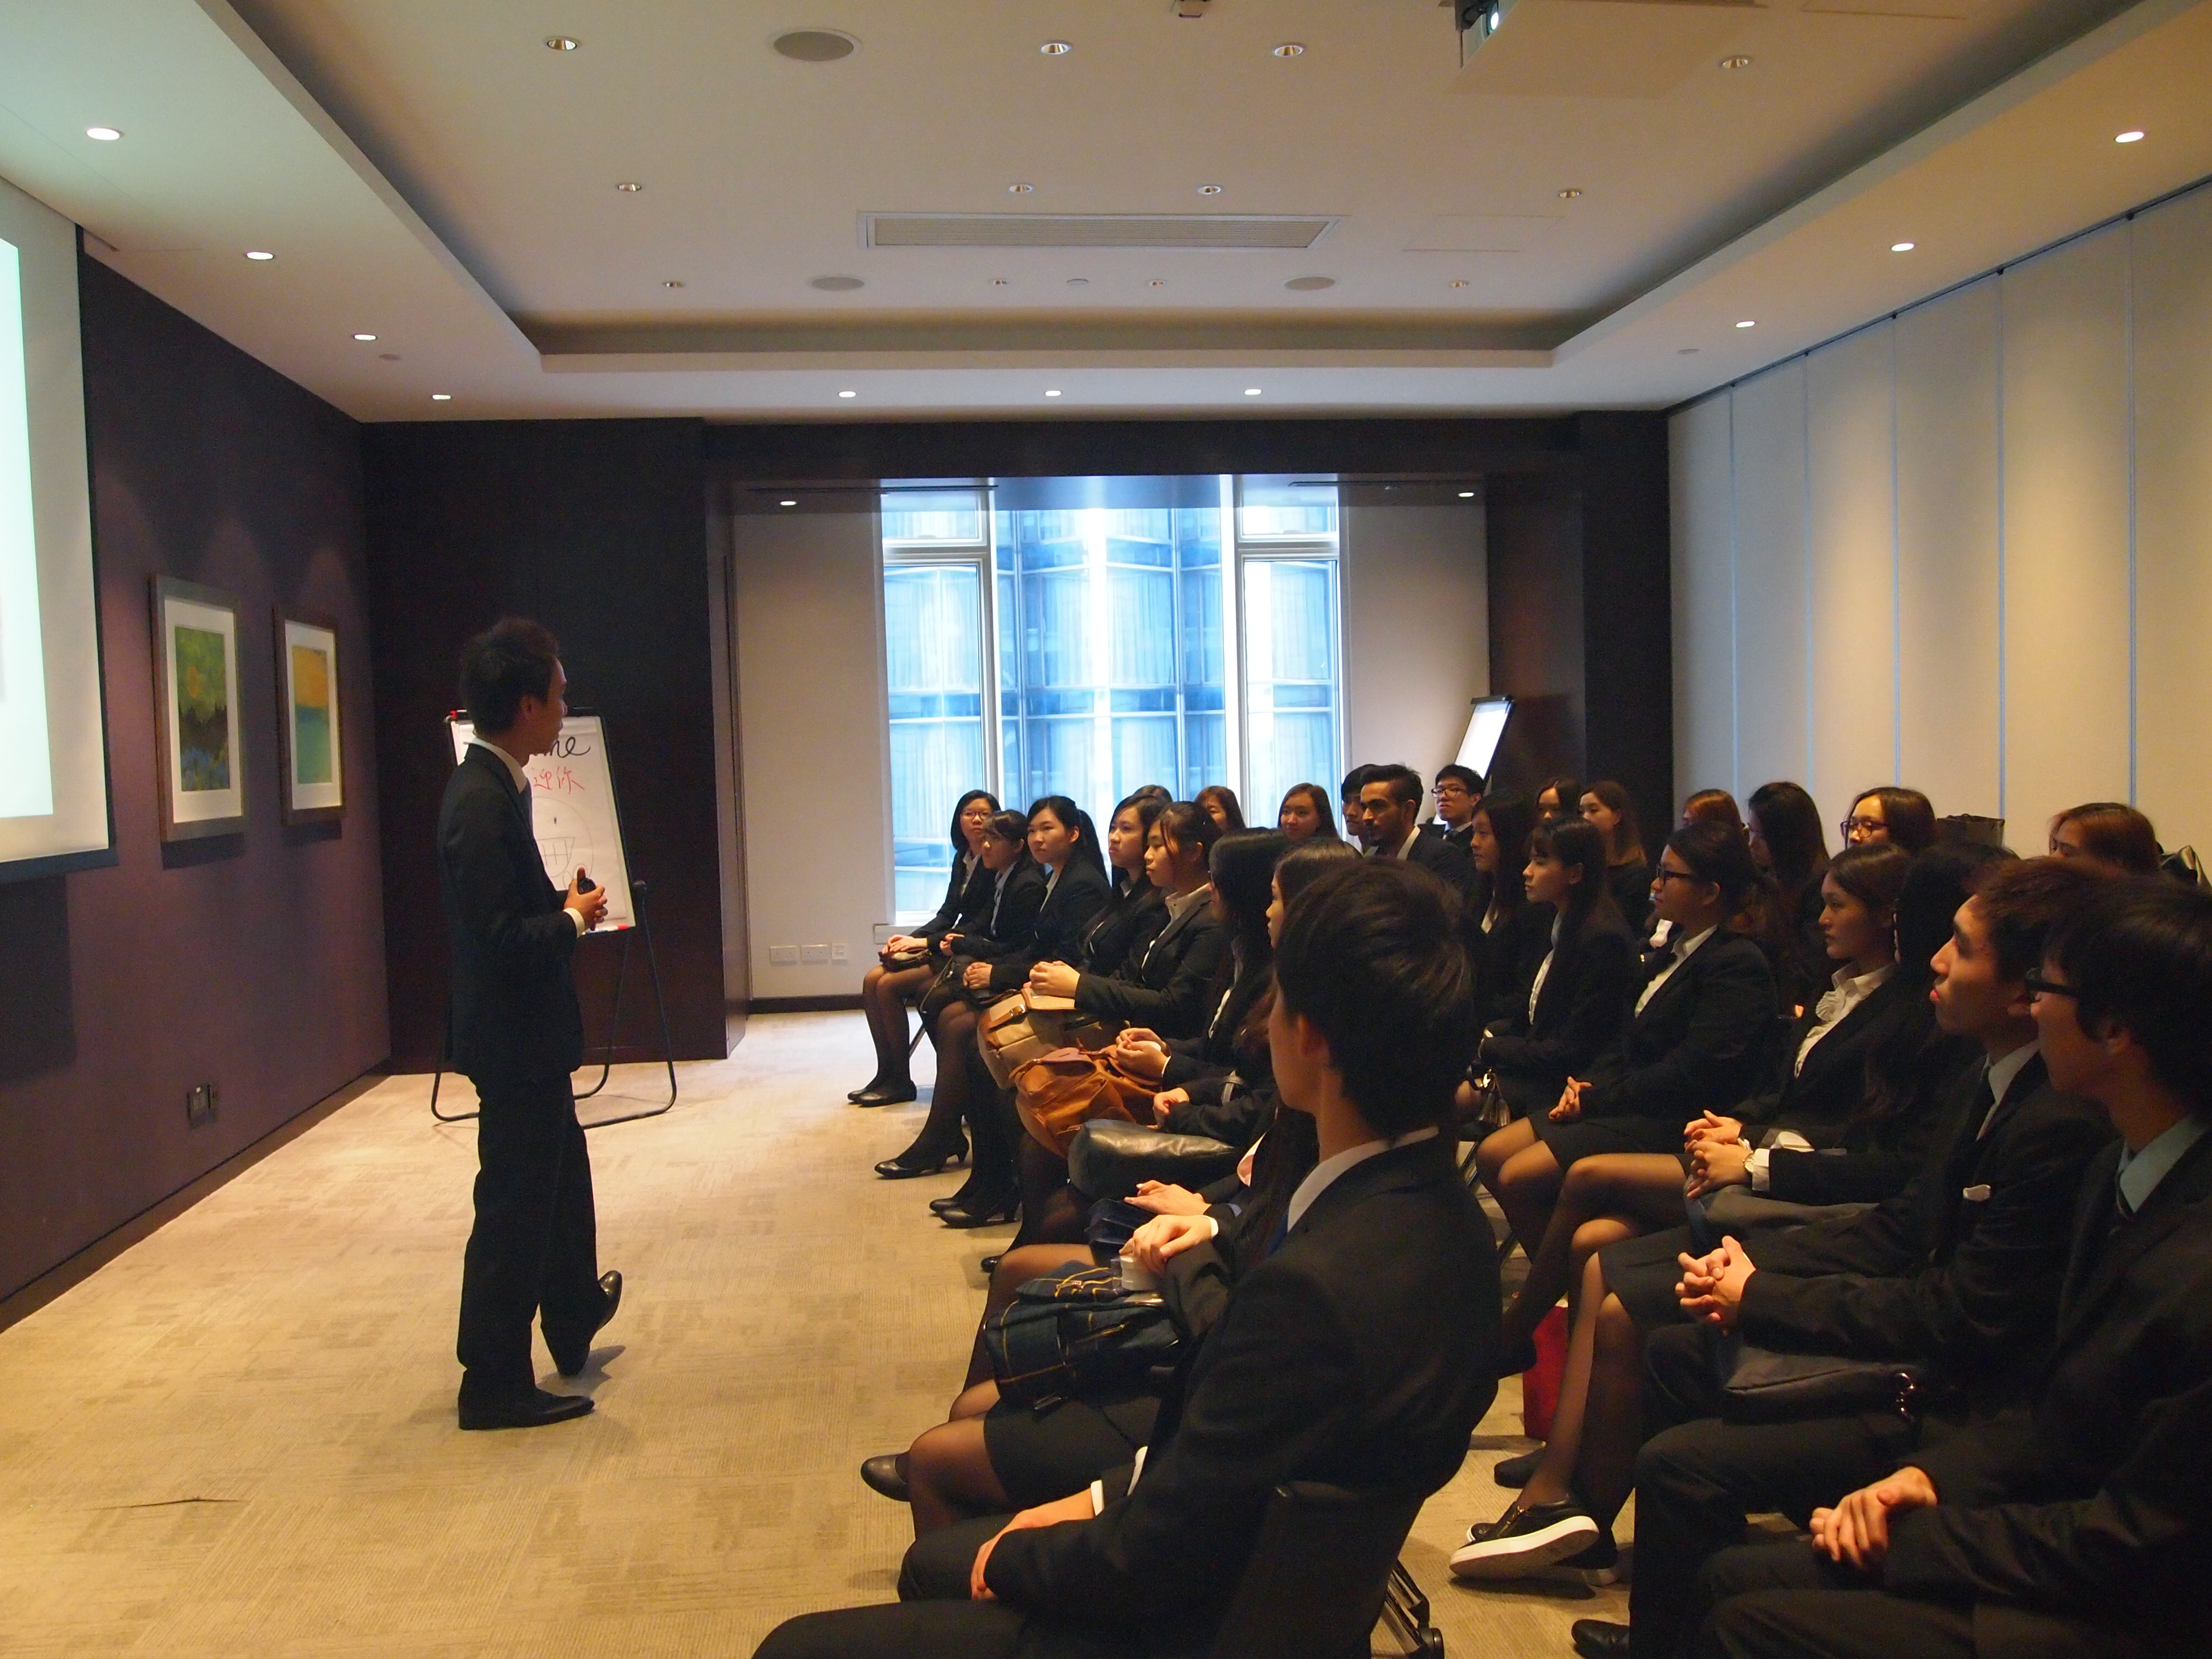 Hotel Visits and Seminars - Photo - 3